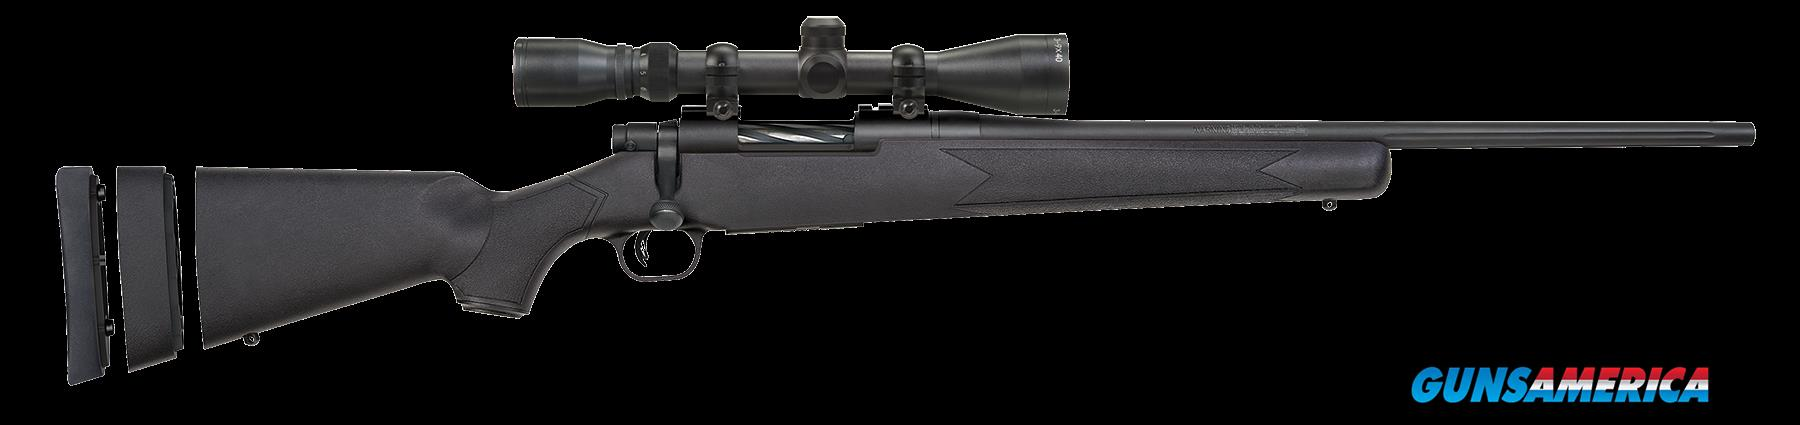 "Mossberg 27853 Patriot Youth with Scope Bolt 7mm-08 Rem 20"" 5+1 Synthetic Black Stk Blued  Guns > Rifles > Mossberg Rifles > Other Bolt Action"